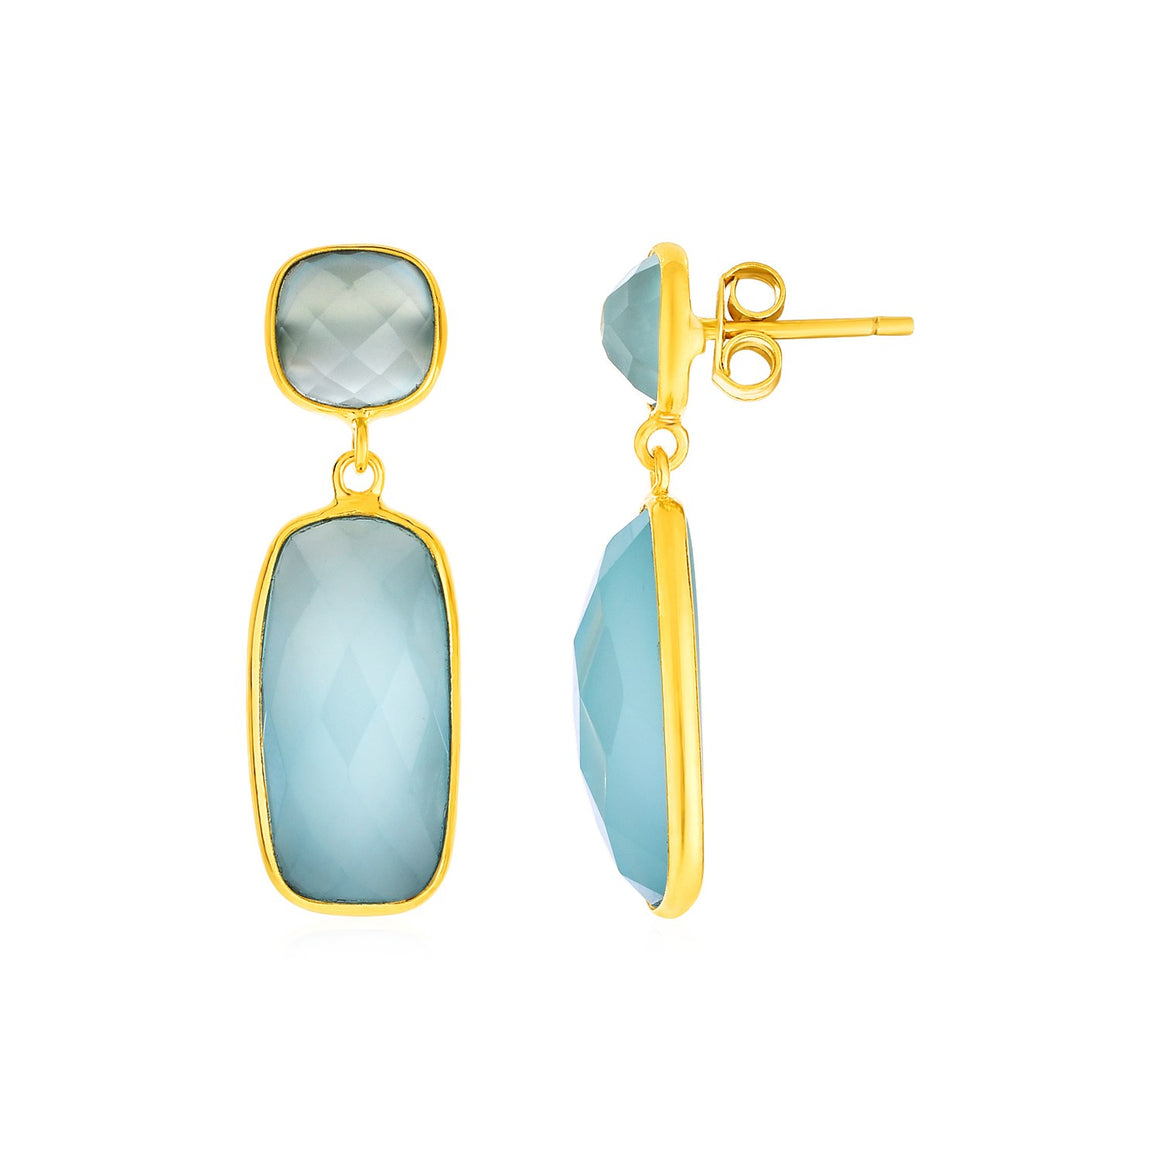 Drop Earrings with Aqua Chalcedony with Gold Finish in Sterling Silver